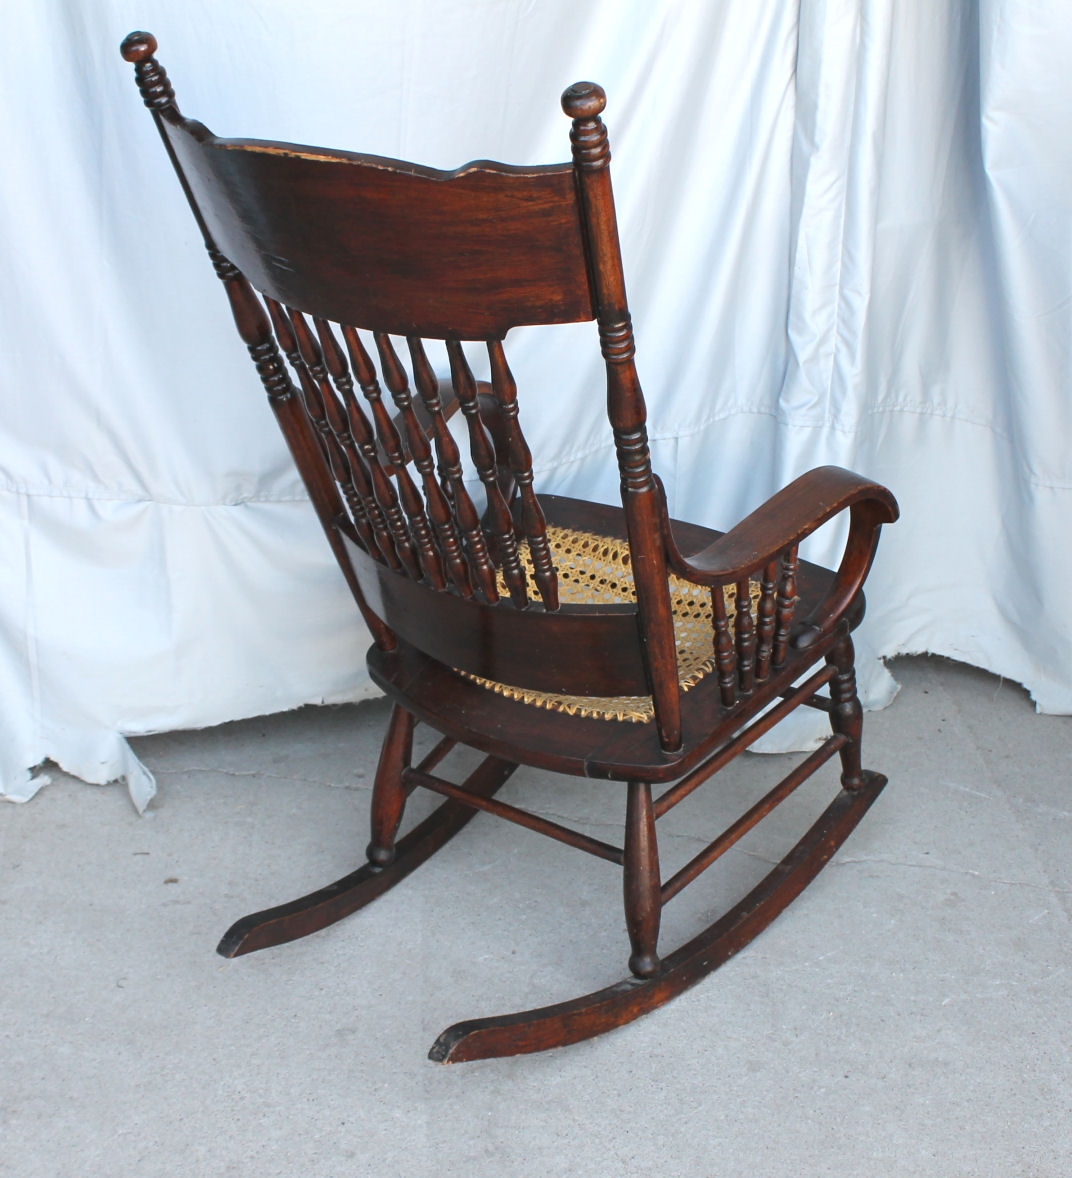 $275 - Bargain John's Antiques » Blog Archive Rocking Chair With Dragons